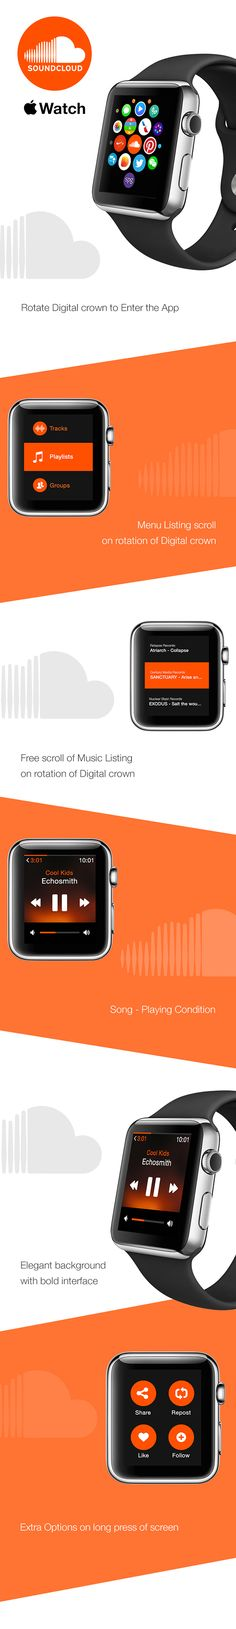 Soundcloud - Apple watch on Behance